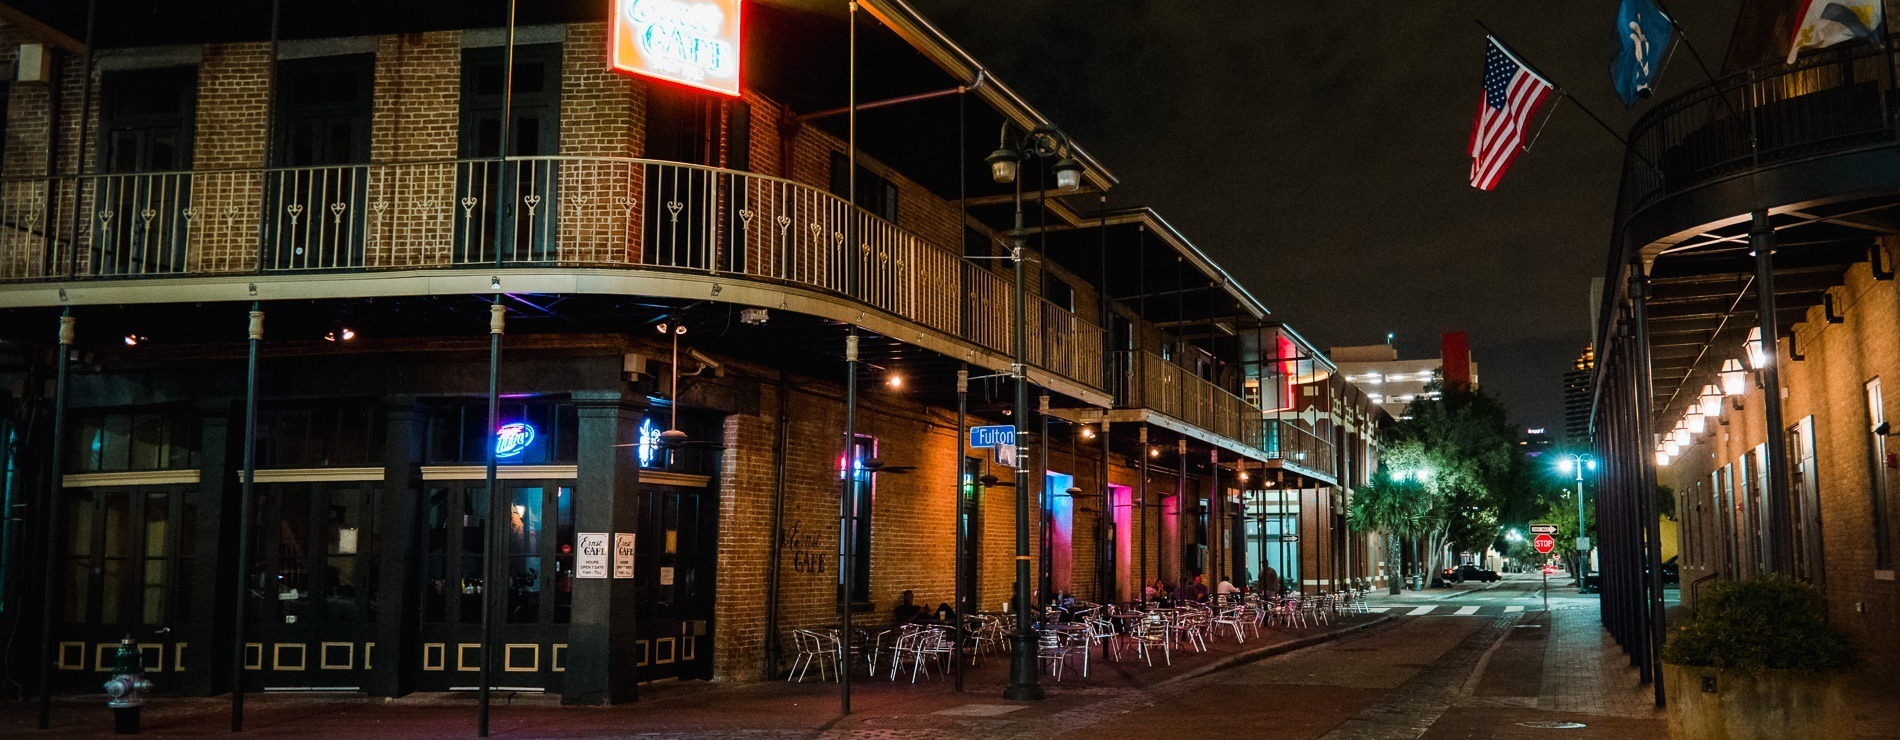 #Dadtography Travel: 72 Hours in New Orleans, Louisiana